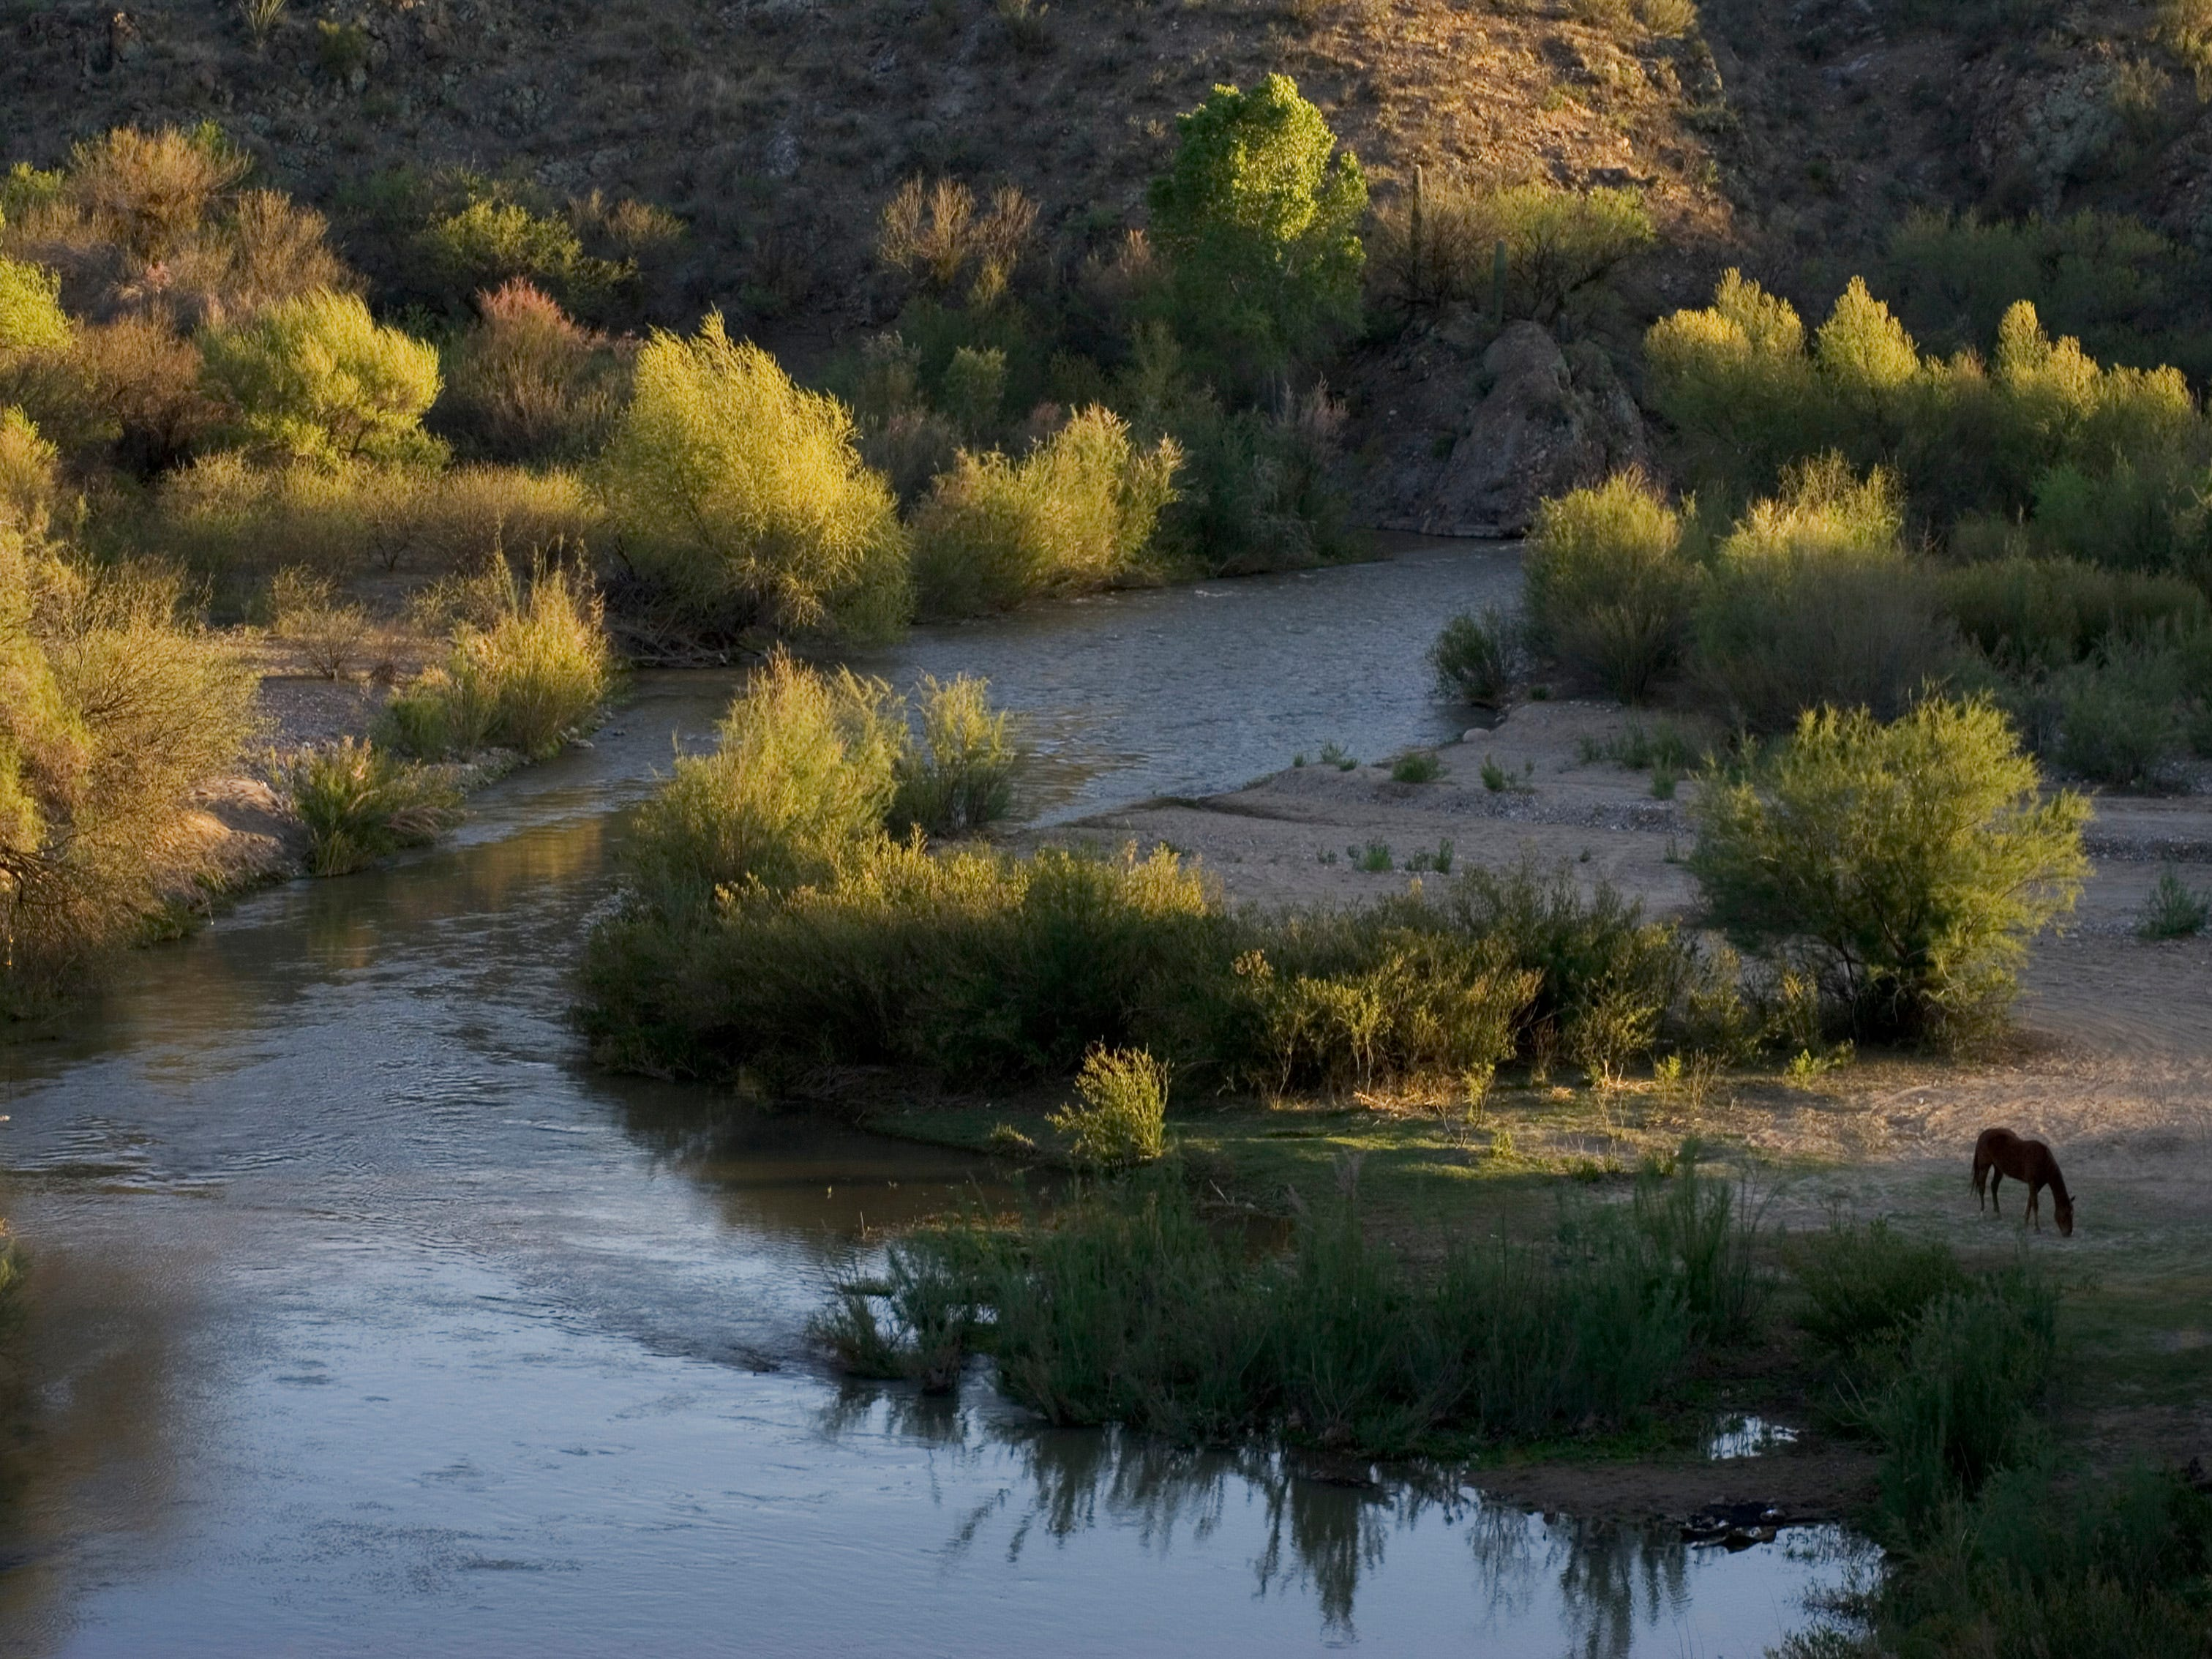 A horse grazes next to the Gila River on April 12, 2006.